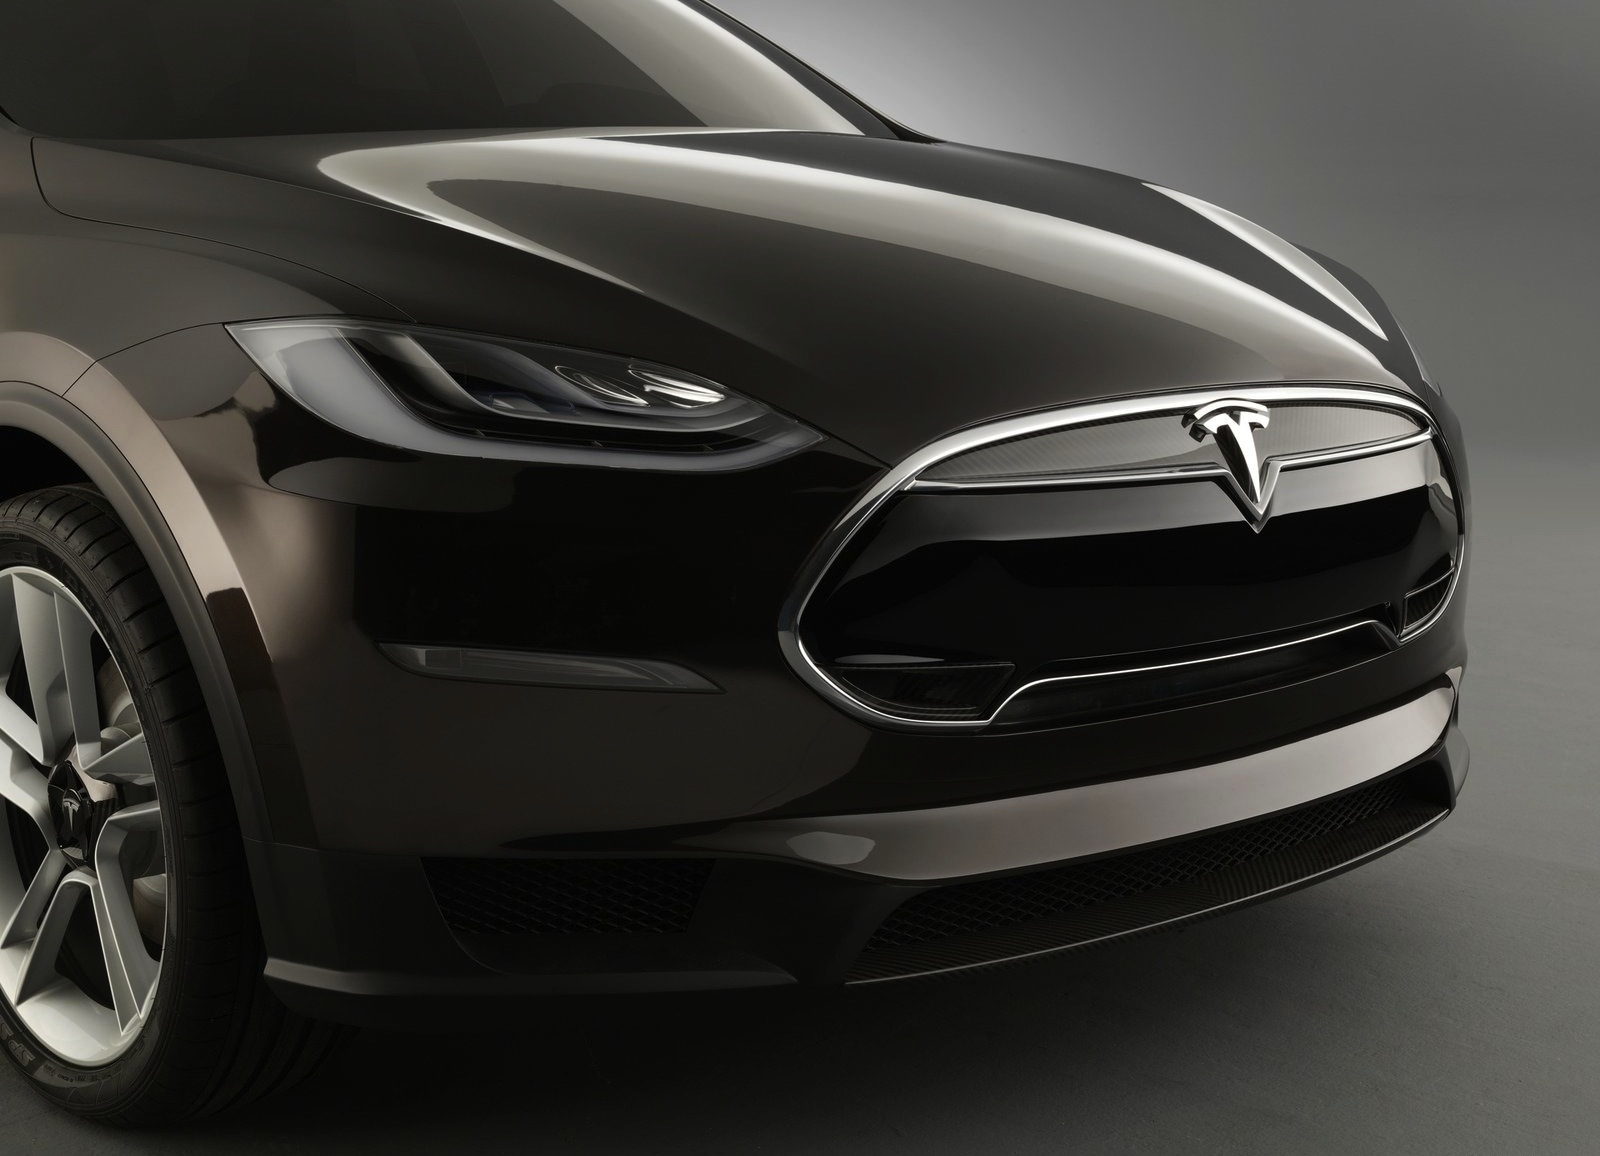 tesla model x suv pricing details revealed photos. Black Bedroom Furniture Sets. Home Design Ideas